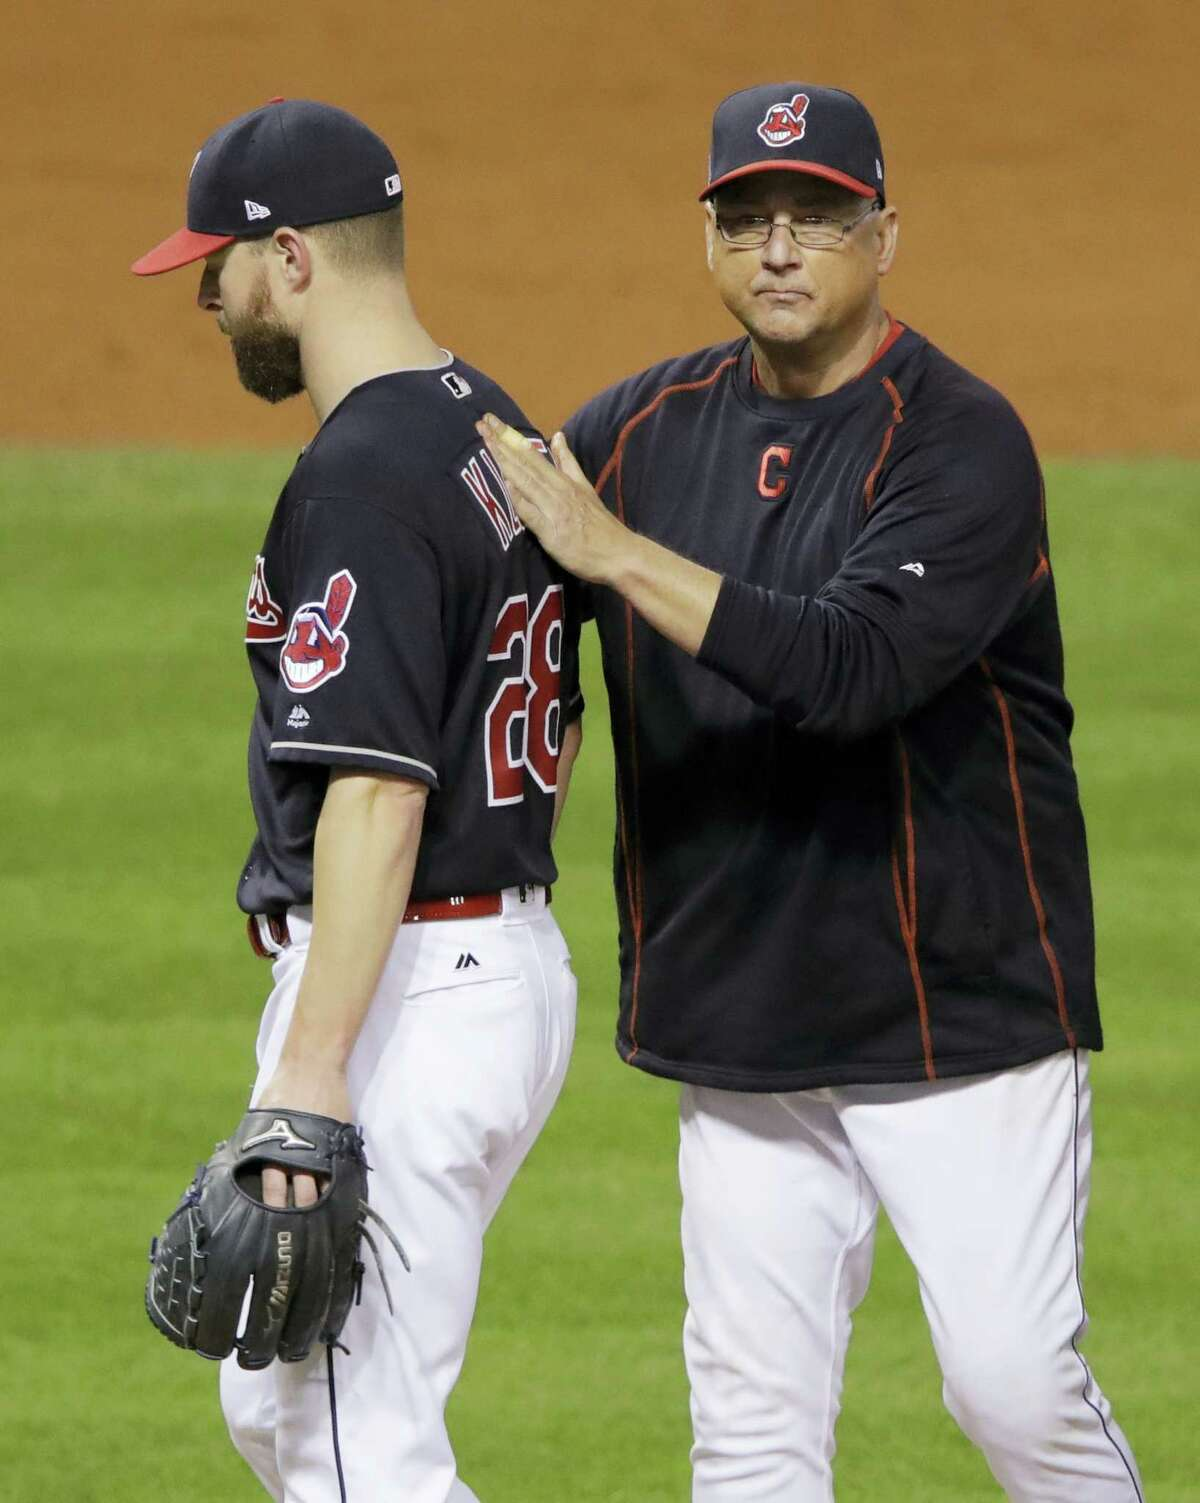 Indians manager Terry Francona takes starting pitcher Corey Kluber out of the game during the fifth inning of Game 7 on Wednesday.